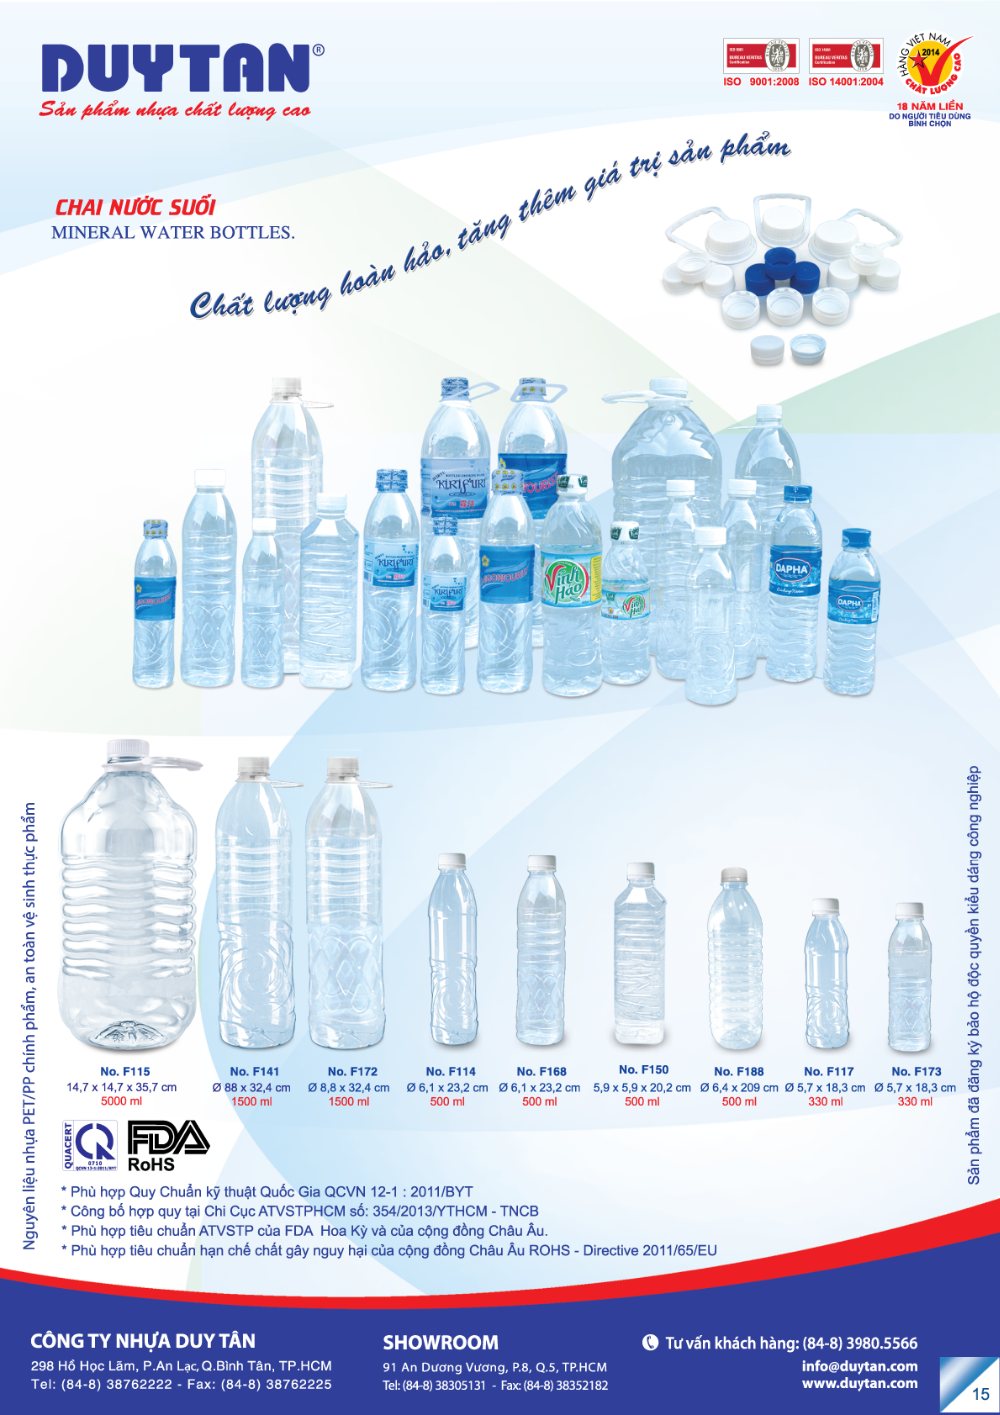 BEST SALE 2016 water bottle 5 gallon 330ml 500ml 5L - PET PP with lid and cap-huynhthithanhthao@duytan.com